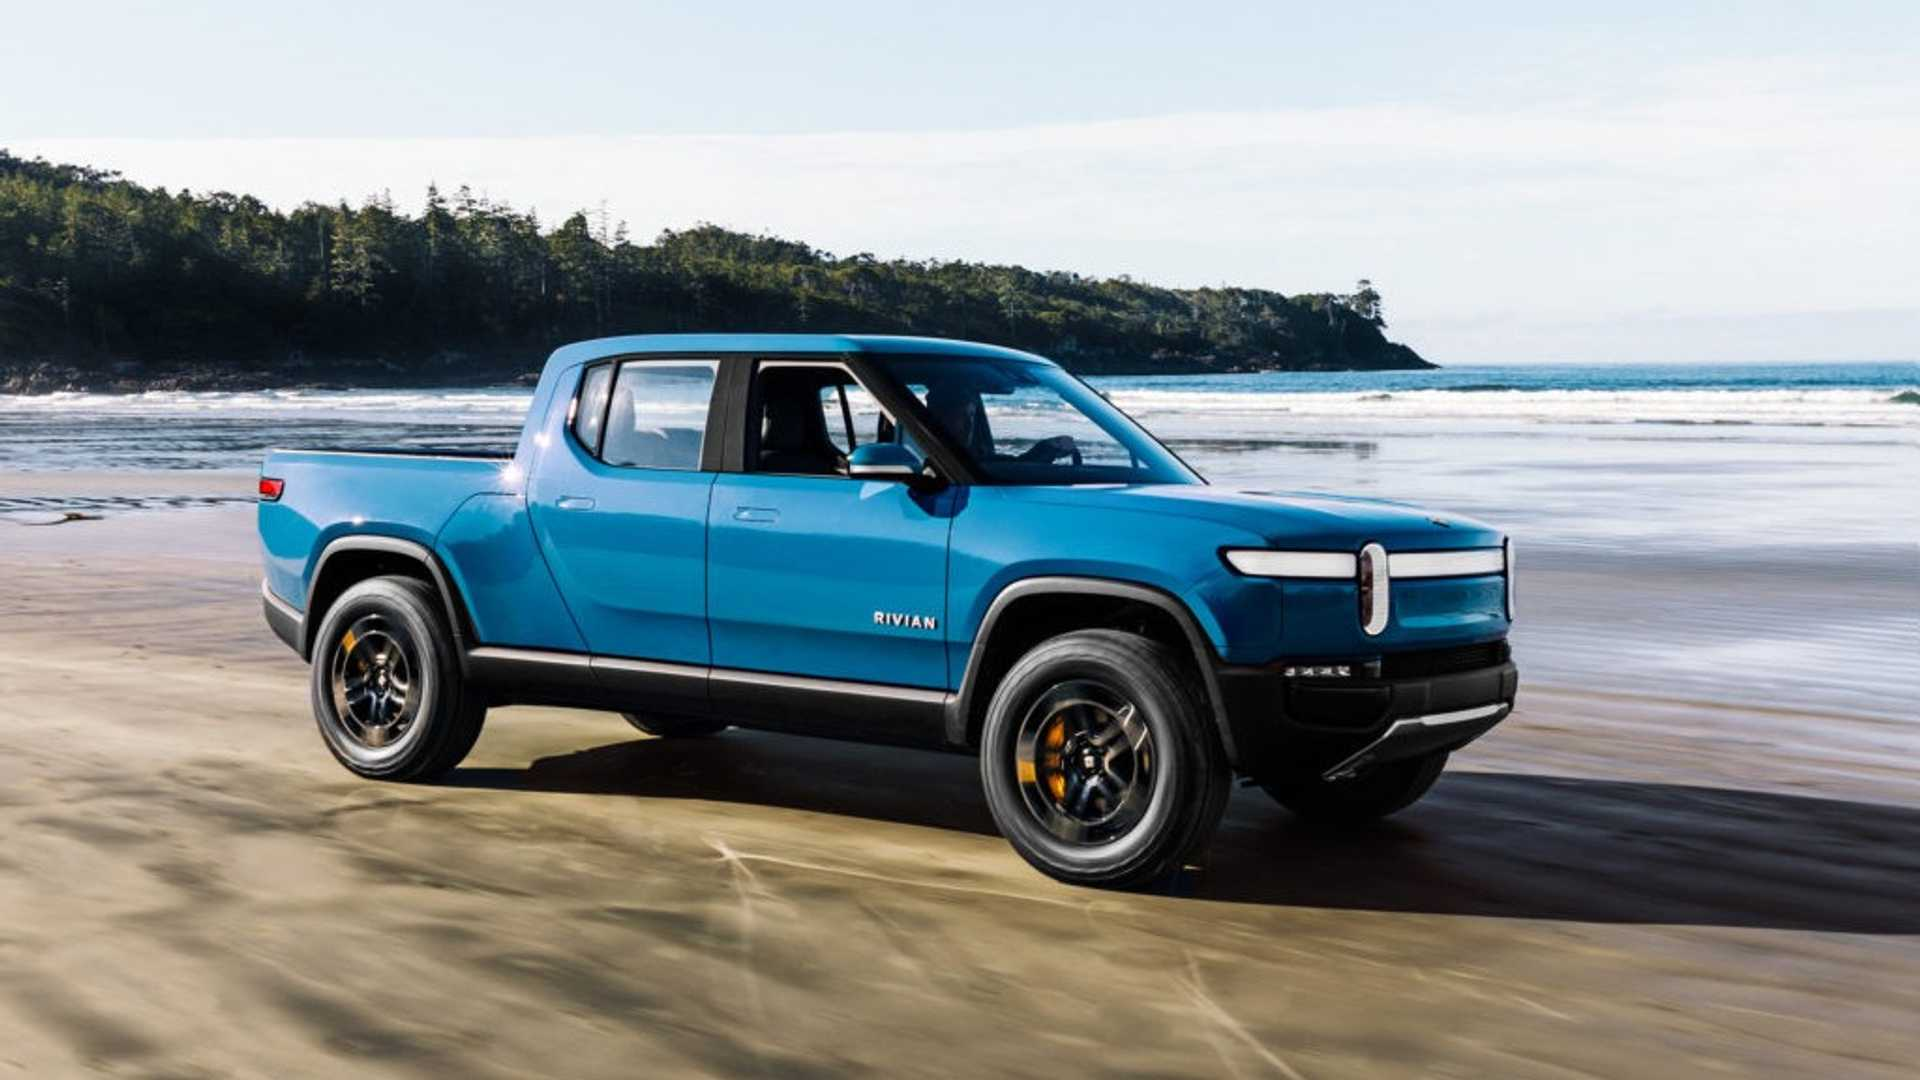 Tesla Rival Rivian Gains Volume: Receives Another $2.5 Billion Investment